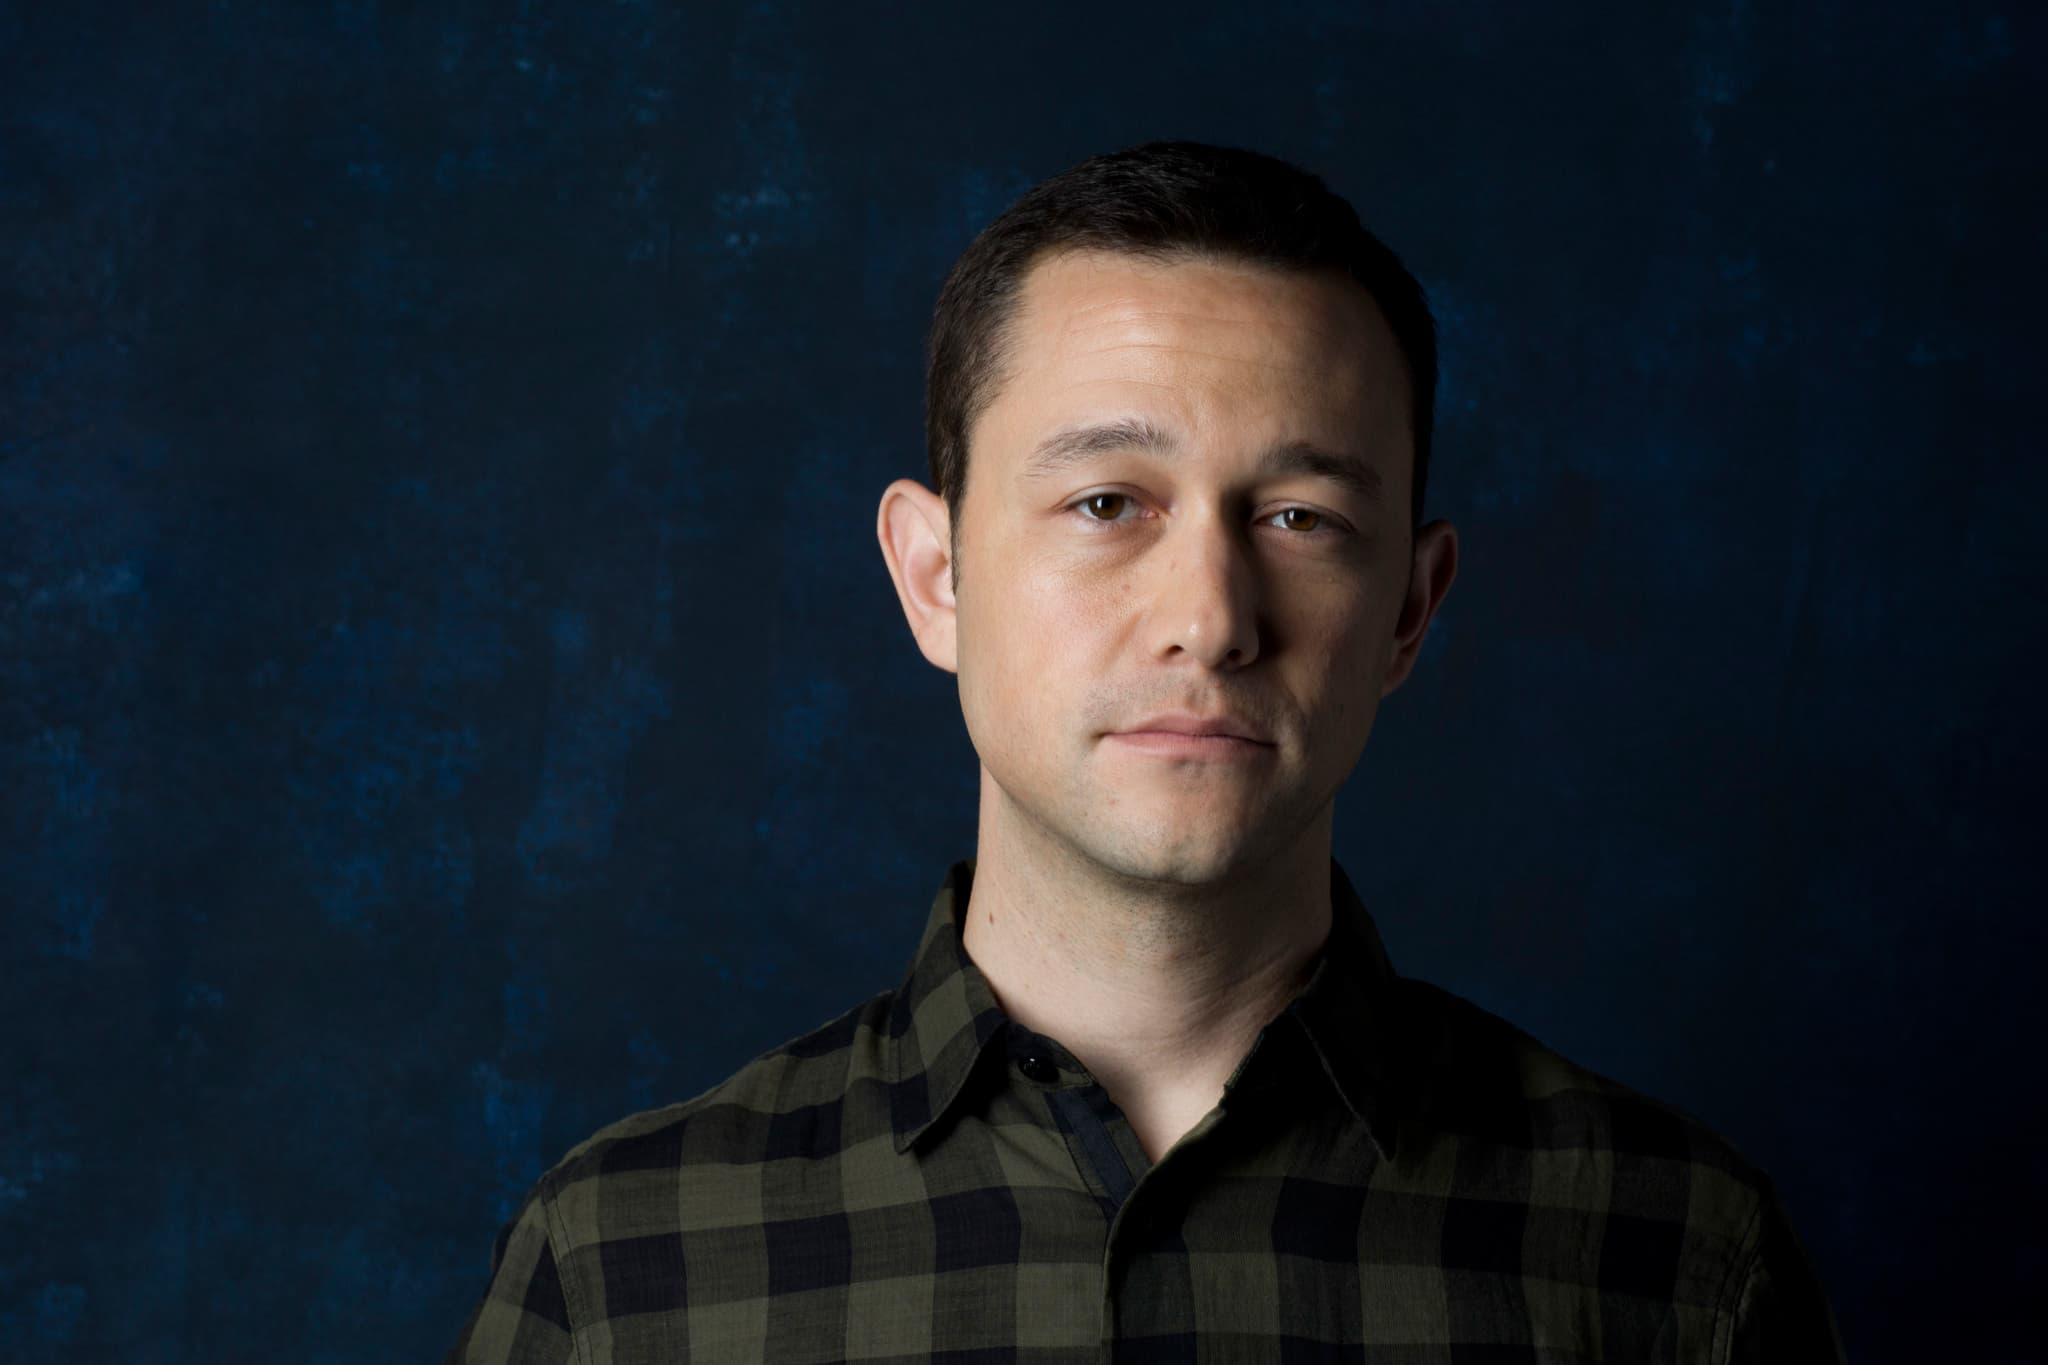 wallpaper of Joseph Gordon Levitt for computer